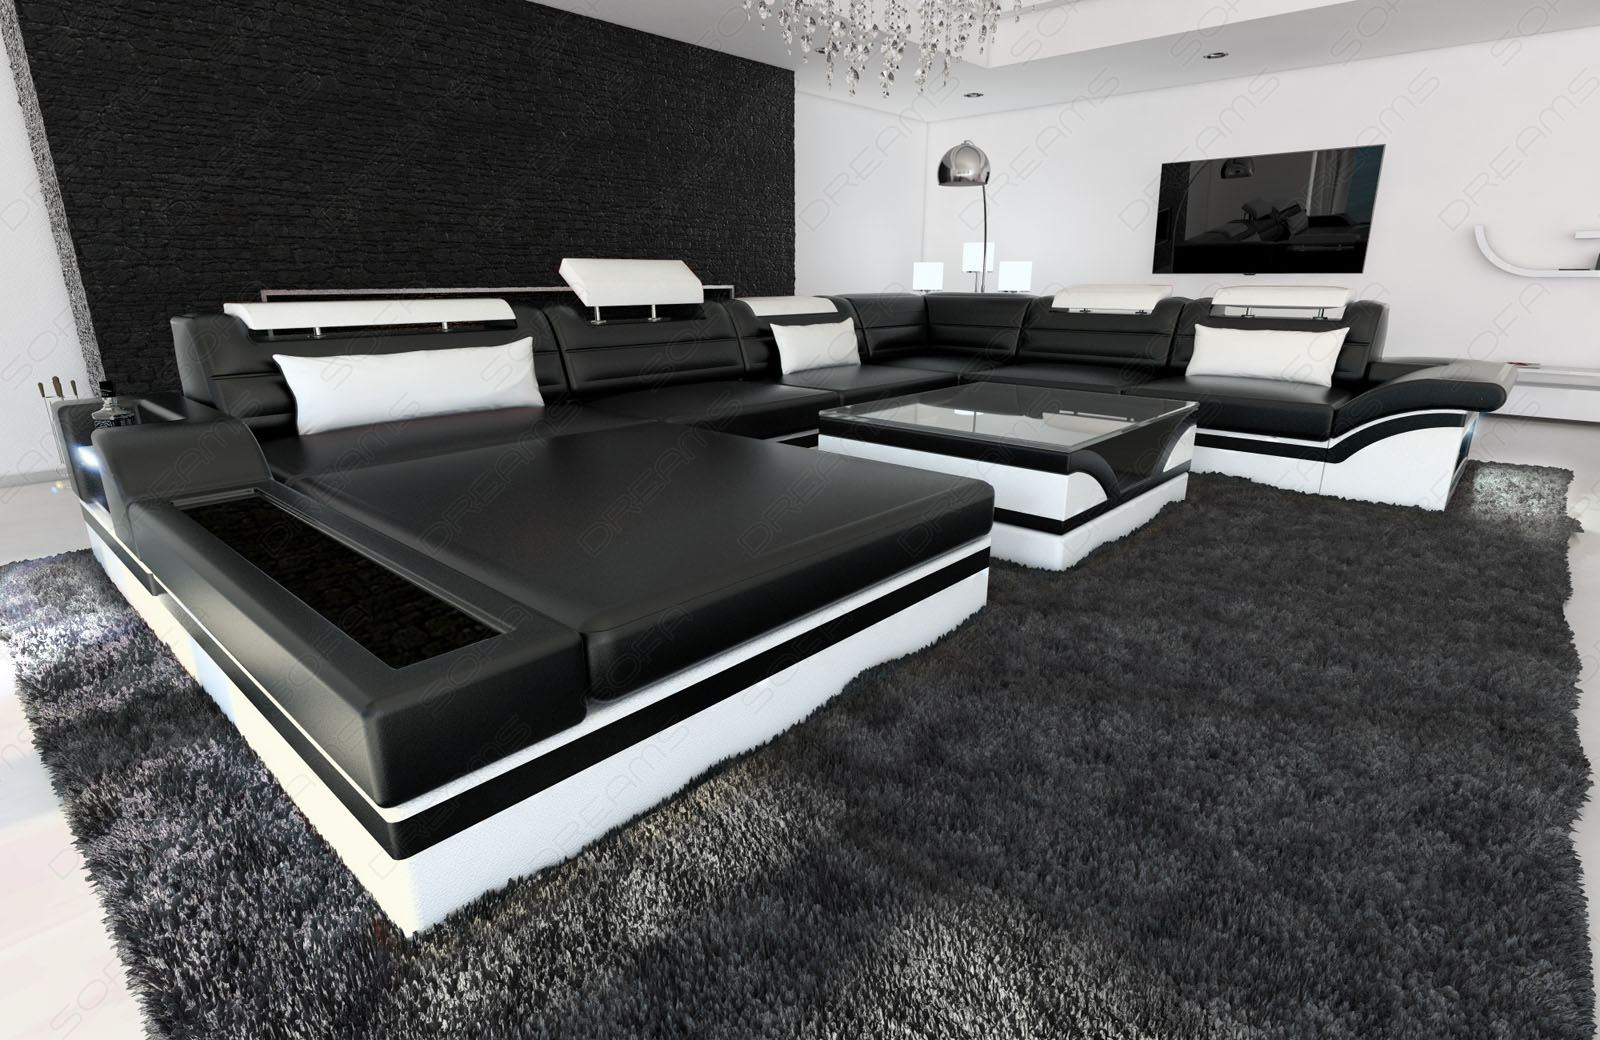 black and white living room ideas car interior design. Black Bedroom Furniture Sets. Home Design Ideas